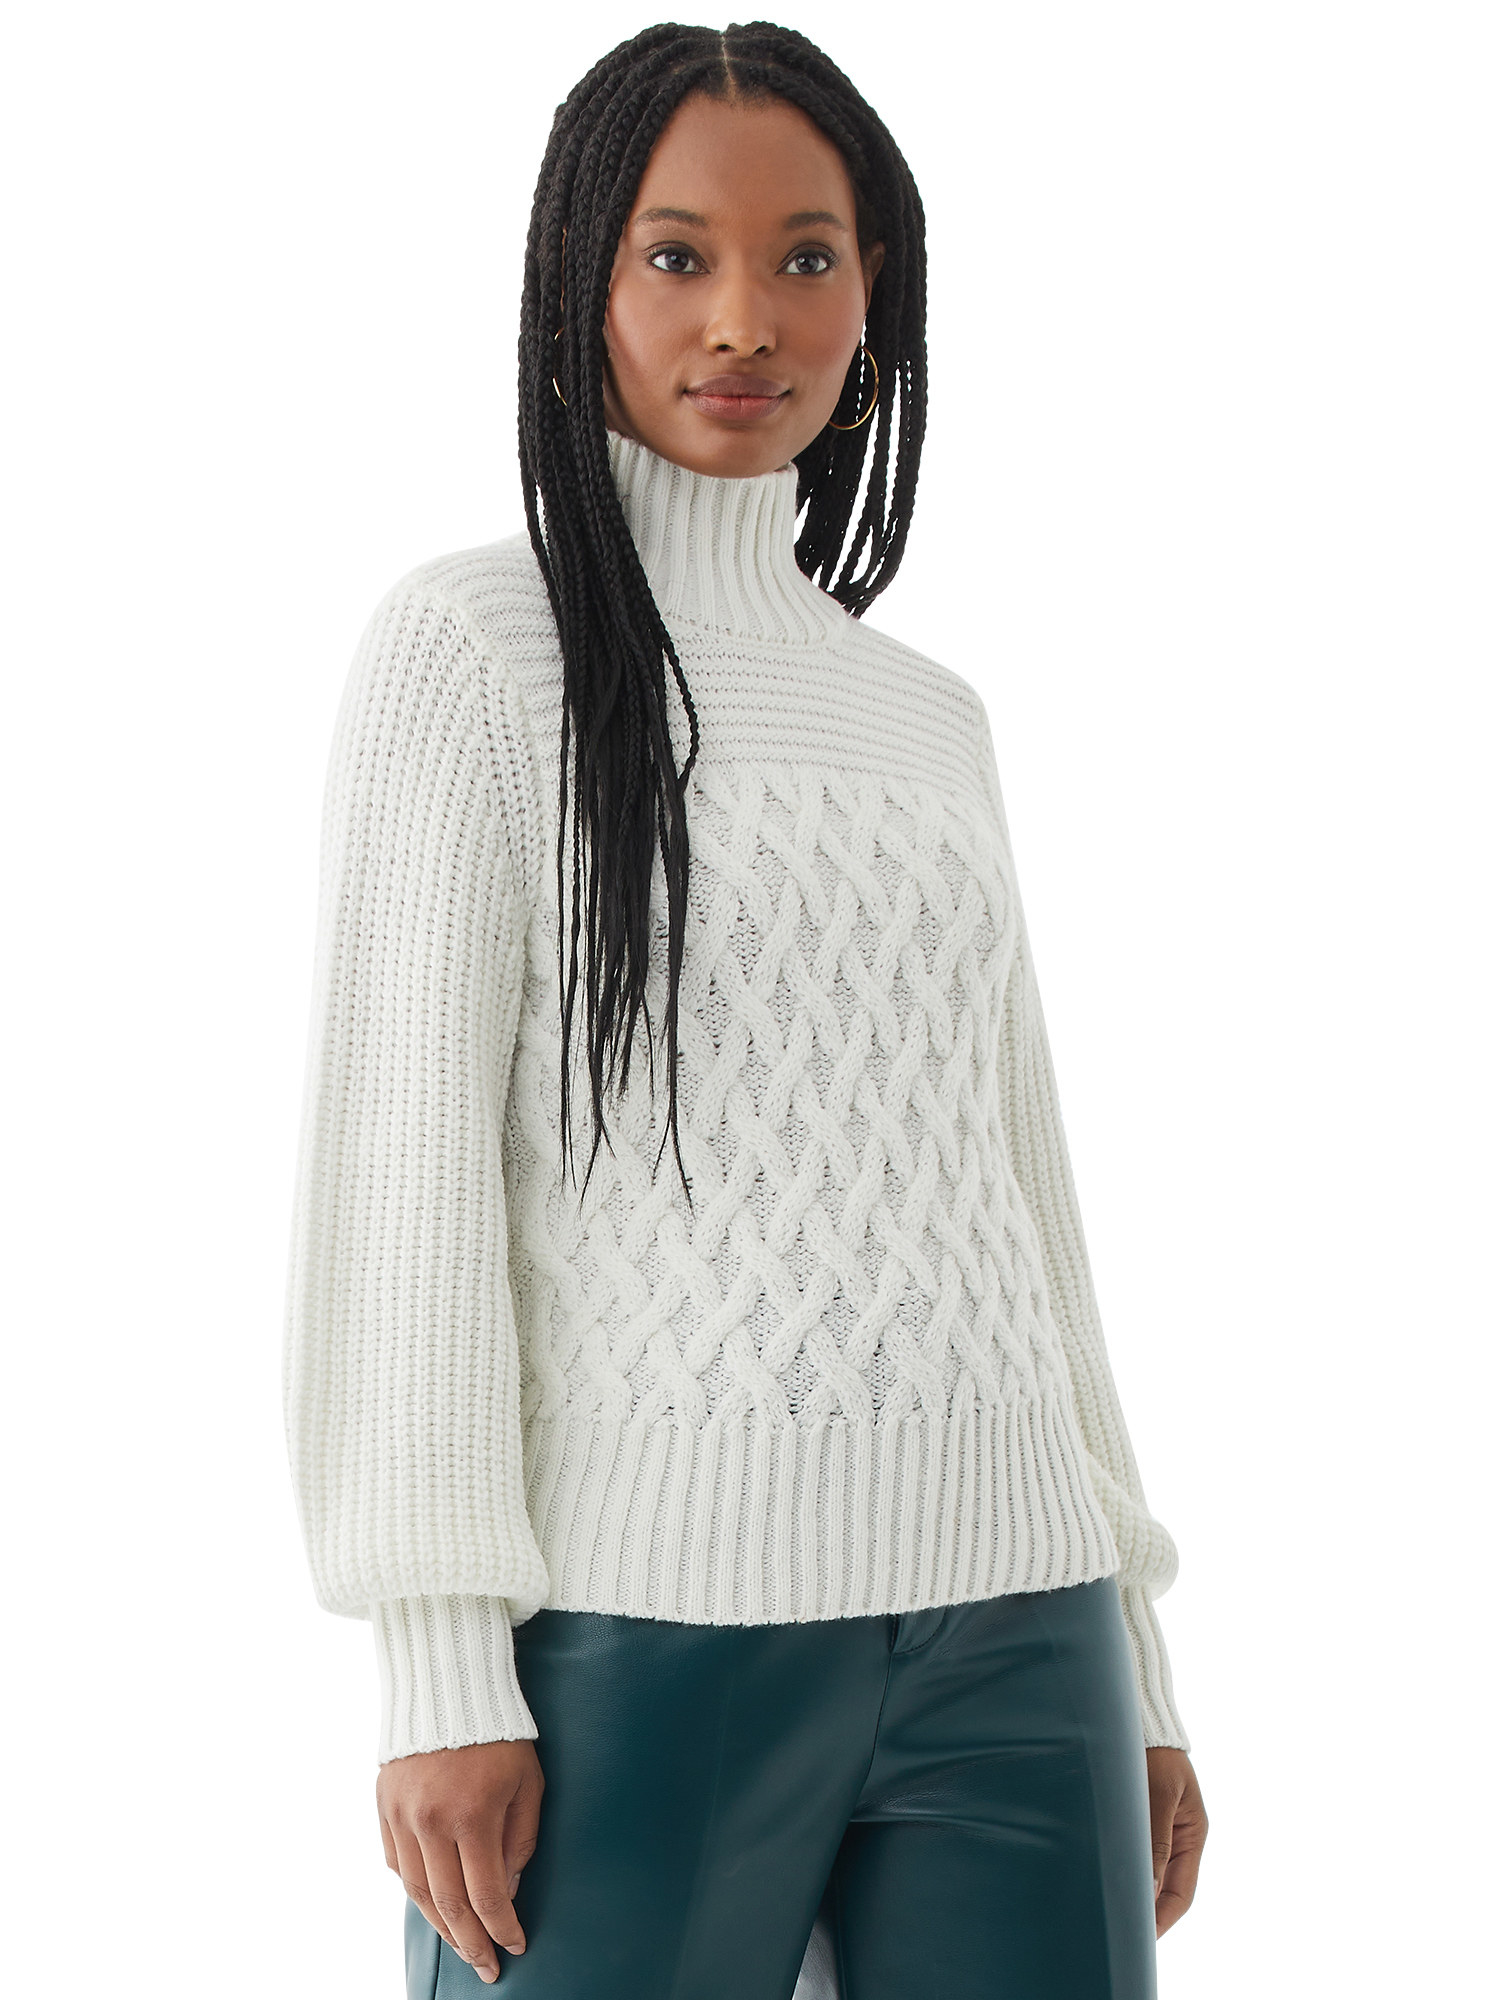 person wearing a white cable knit turtleneck sweater and dark leather pants